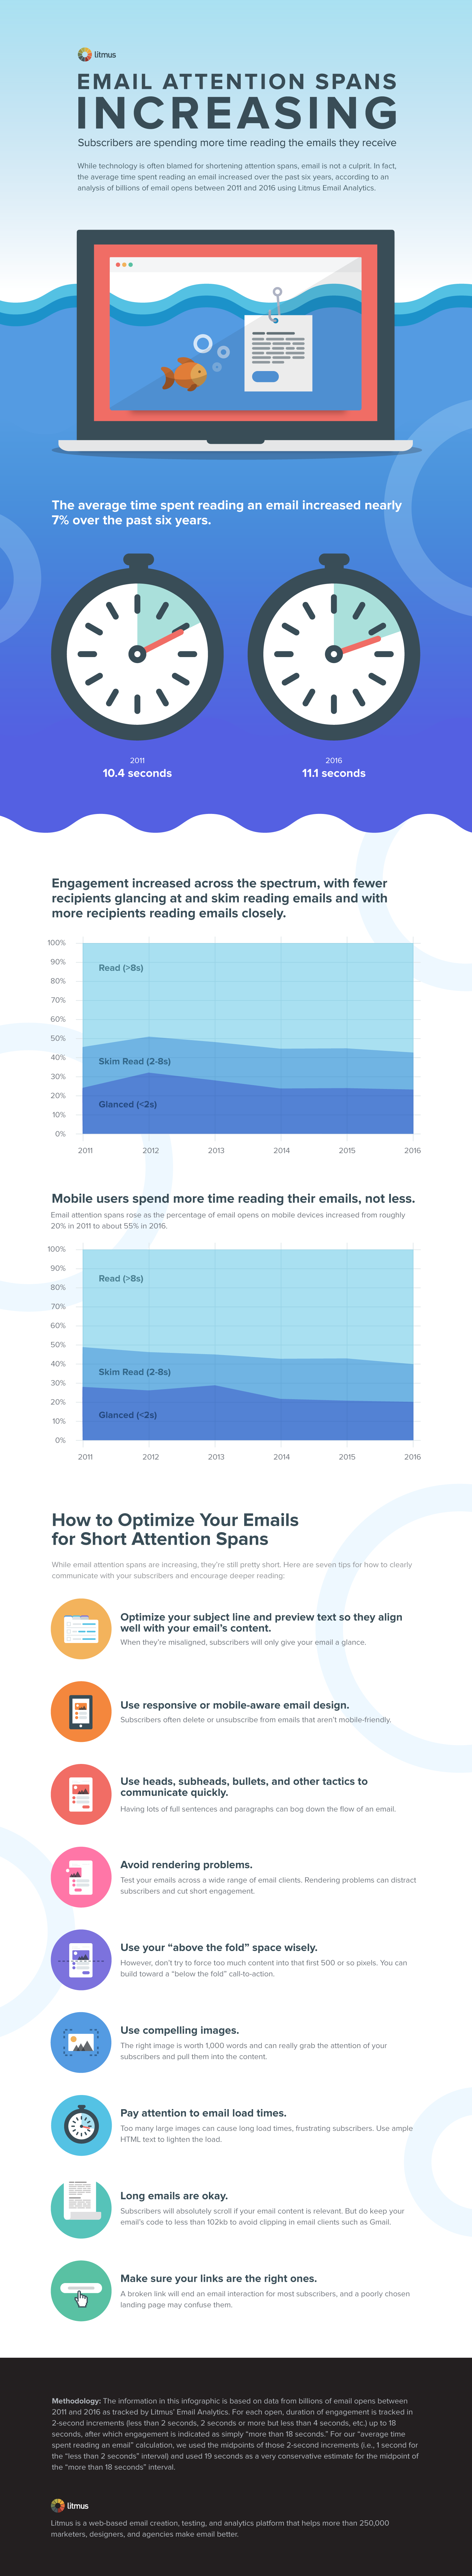 email-attention-spans-increasing-design.png